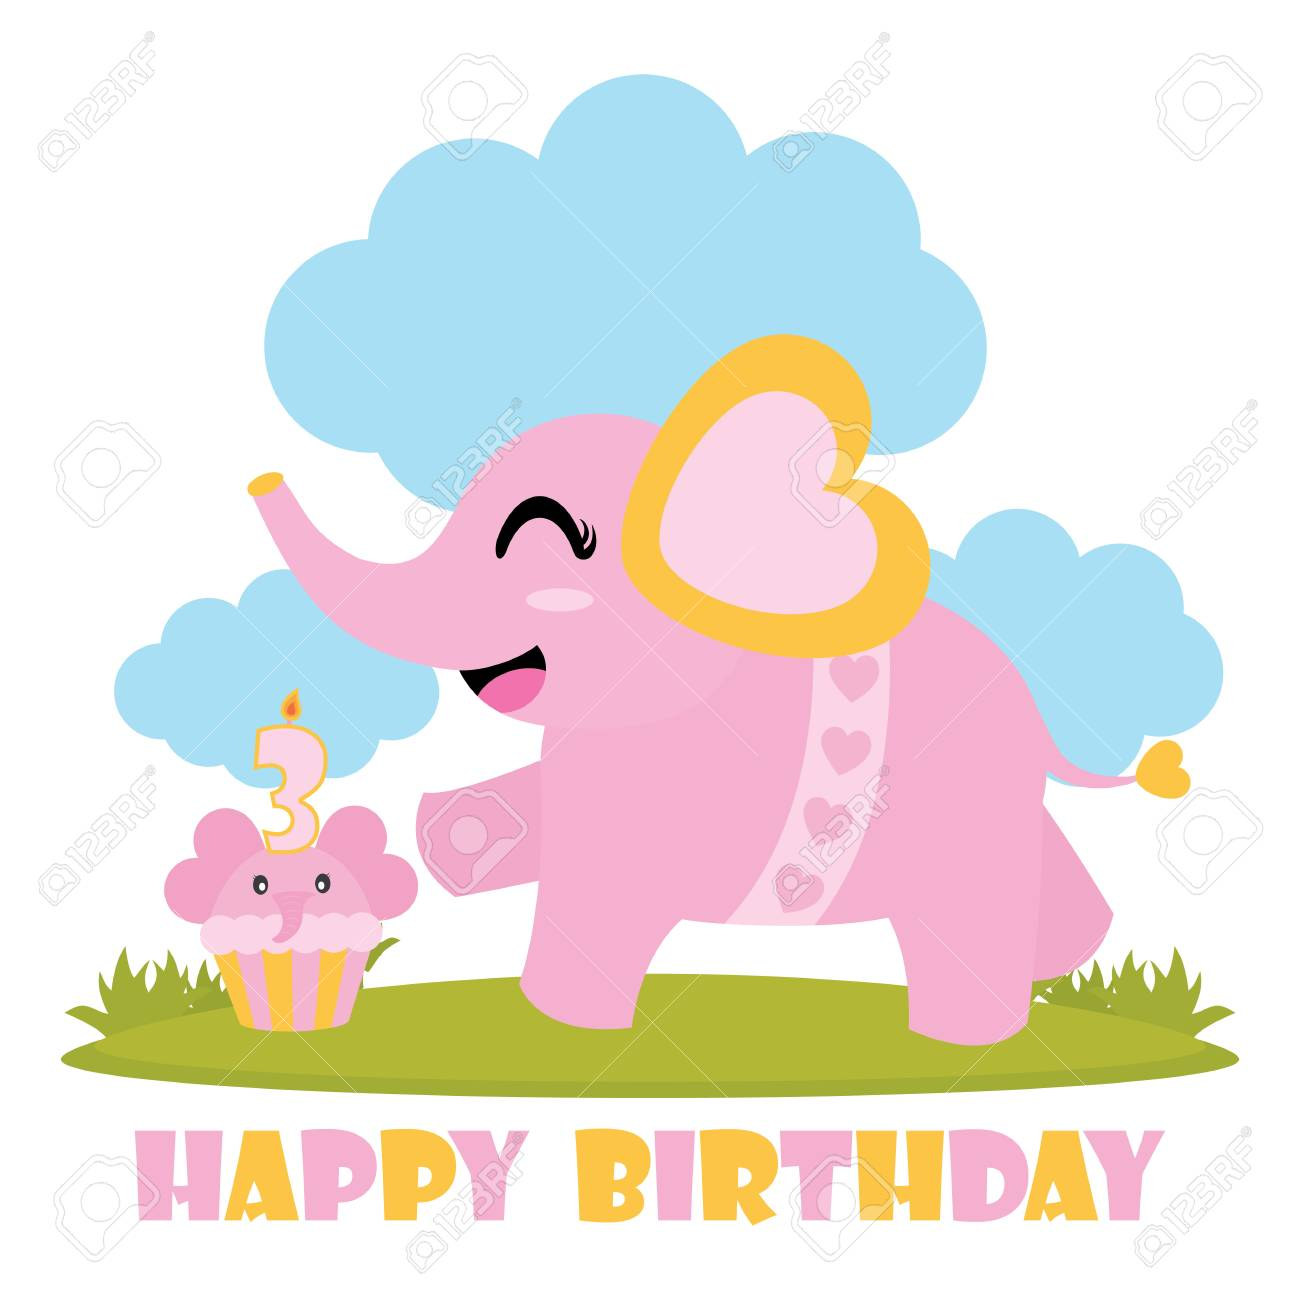 Cute Baby Elephant With Her Birthday Cake For Card Design Stock Vector